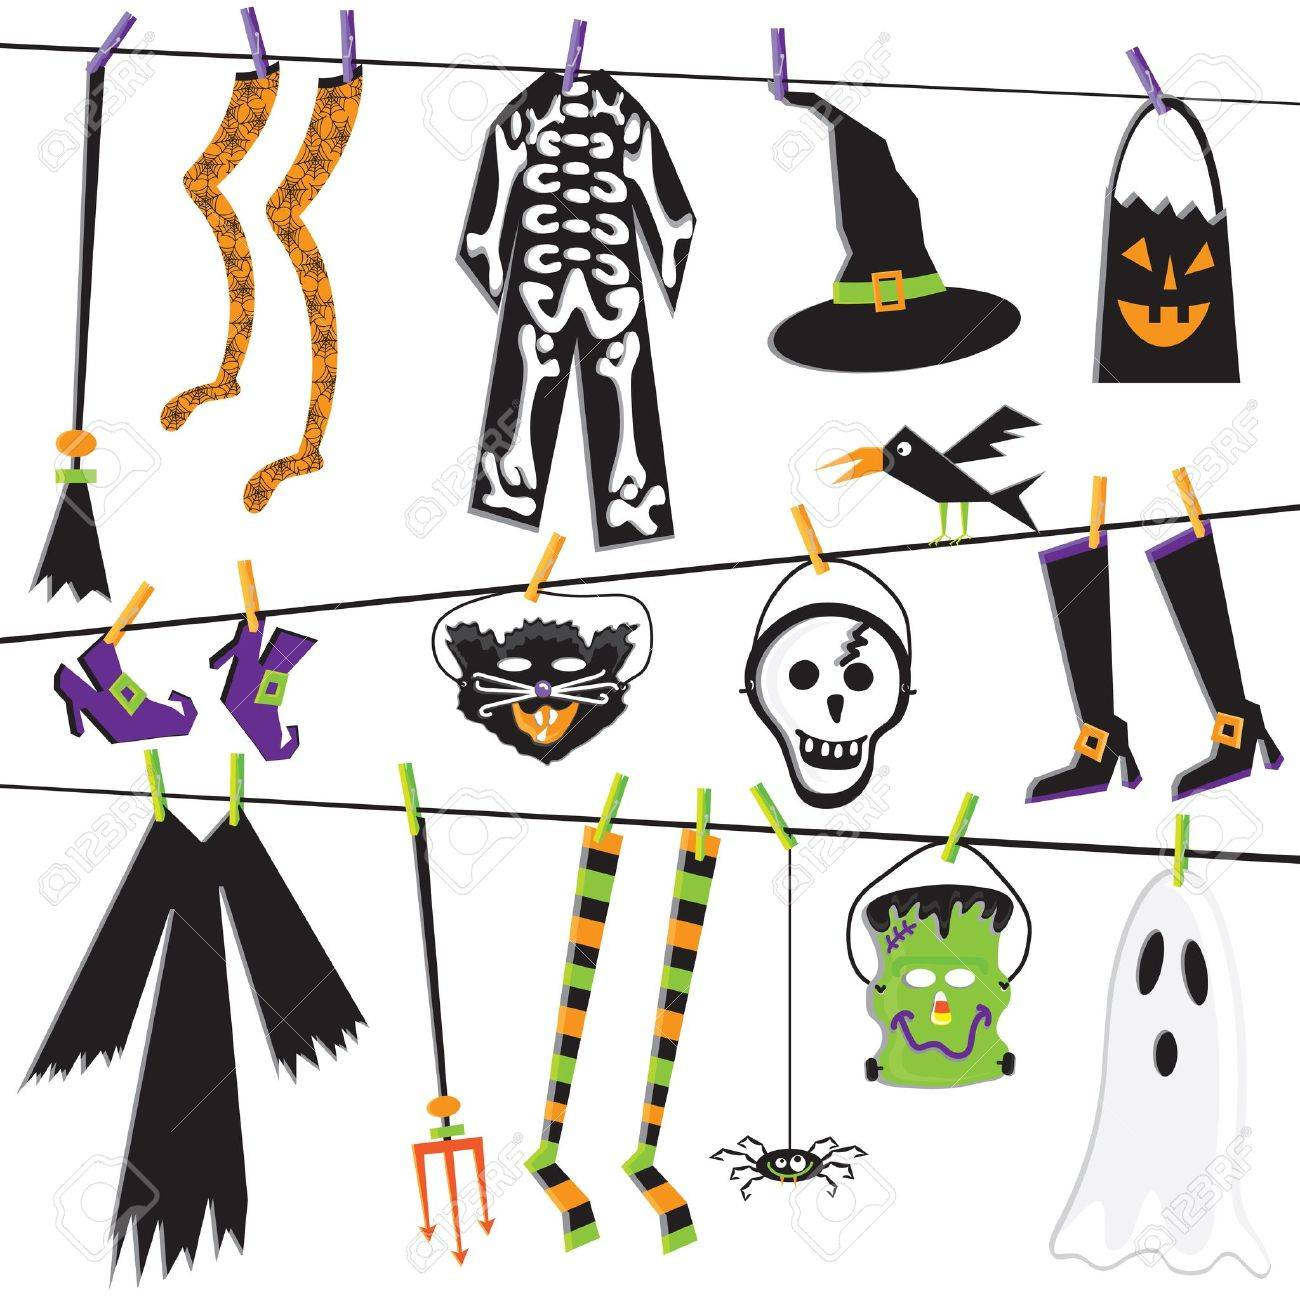 Halloween Costume Clothesline Clip Art Royalty Free Cliparts ...